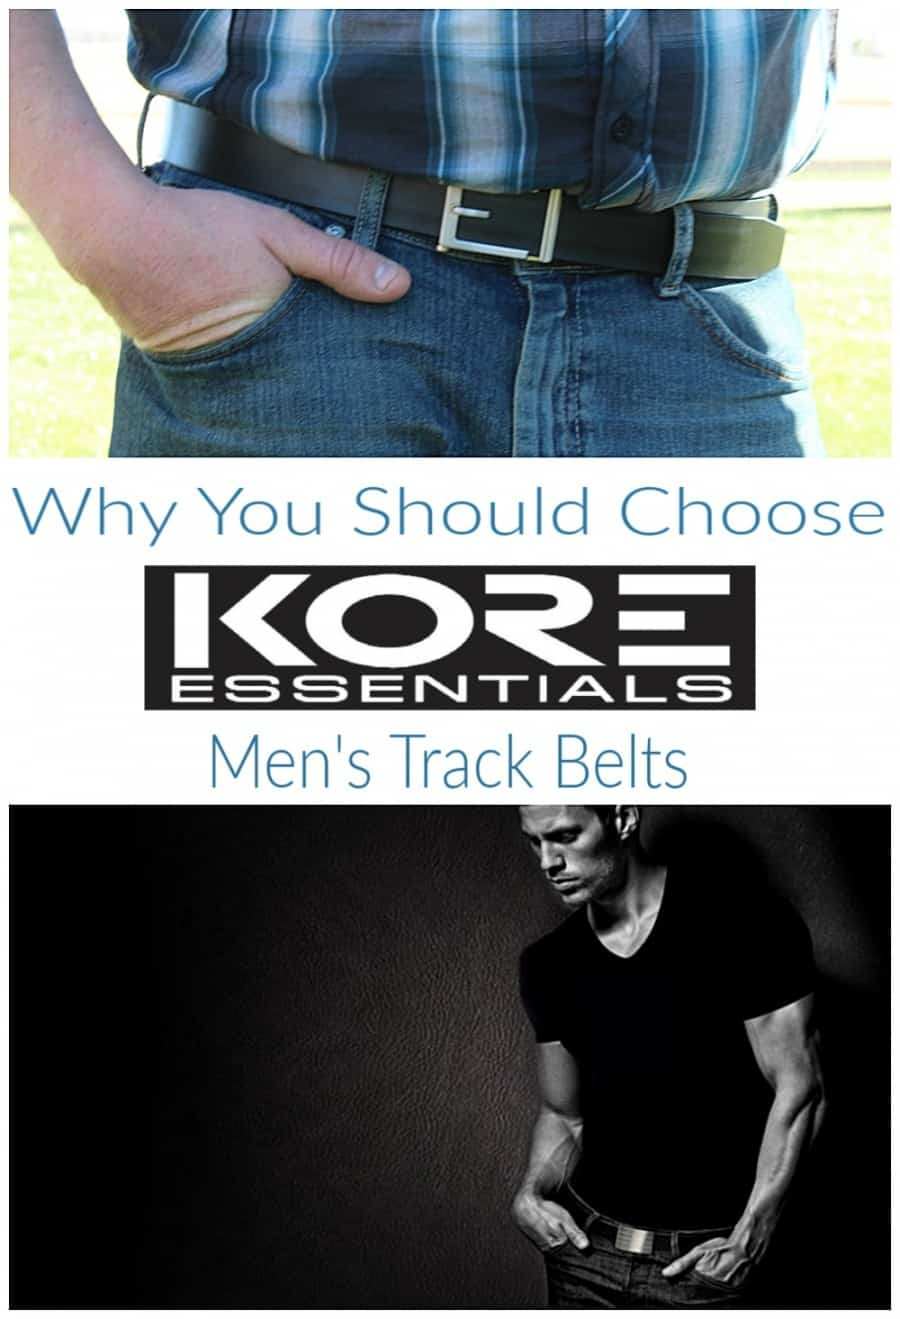 Kore Essentials Mens Track Belts Thrifty Nifty Mommy Innovative gear for guys since 2013 pioneers and founders of the ratcheting gun belt. kore essentials mens track belts